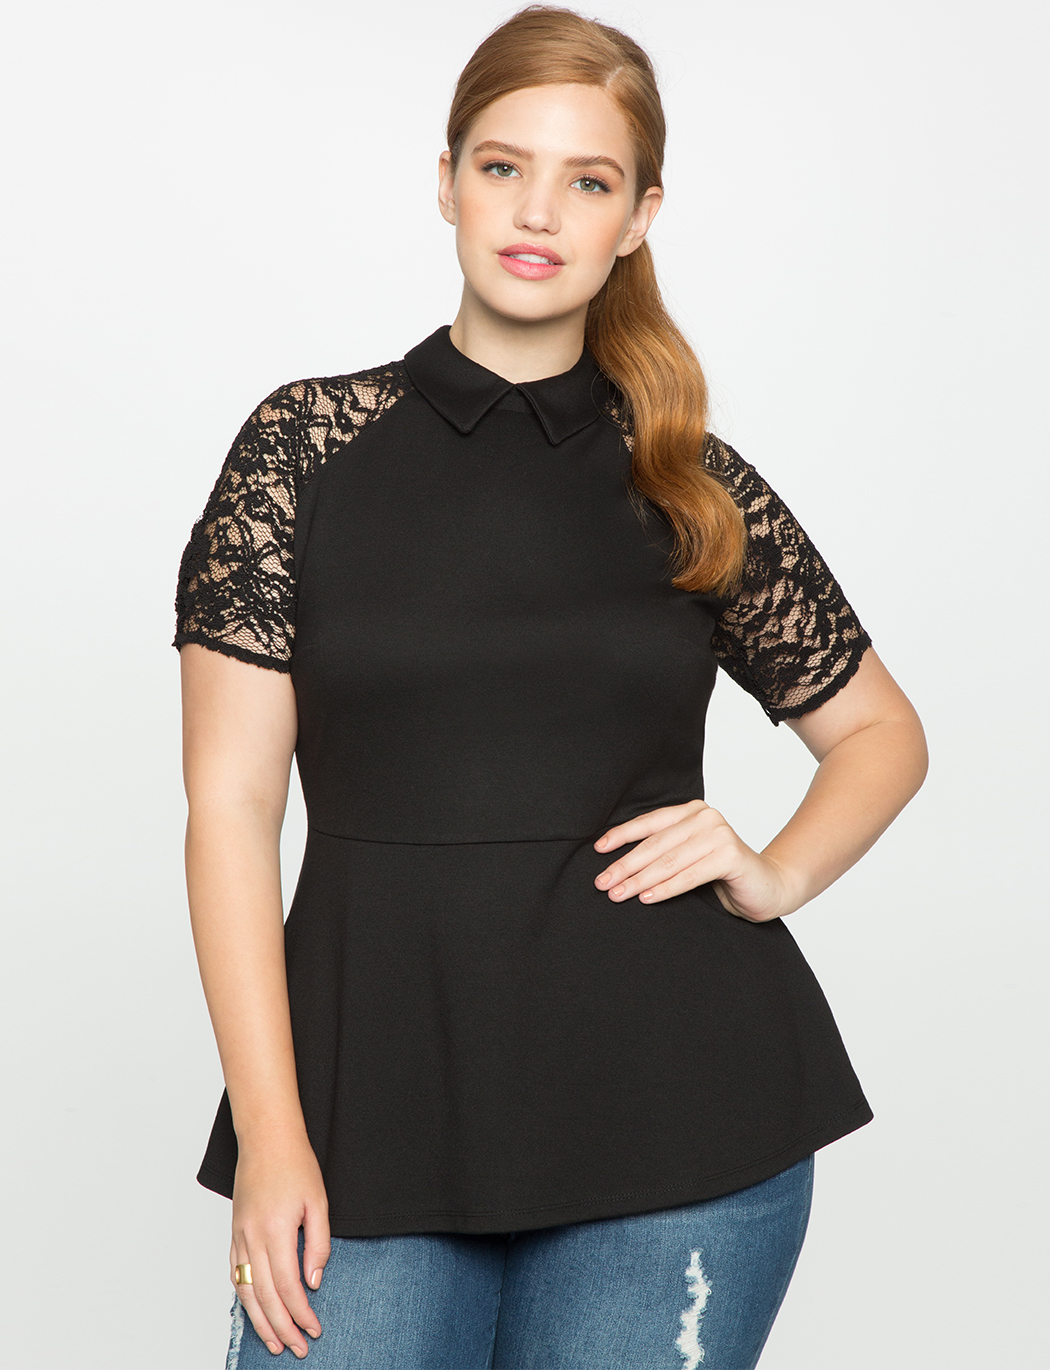 f8ea30f477fac Lace sleeve collared peplum top womens plus size tops eloquii jpg 1050x1370 Peplum  tops with sleeves